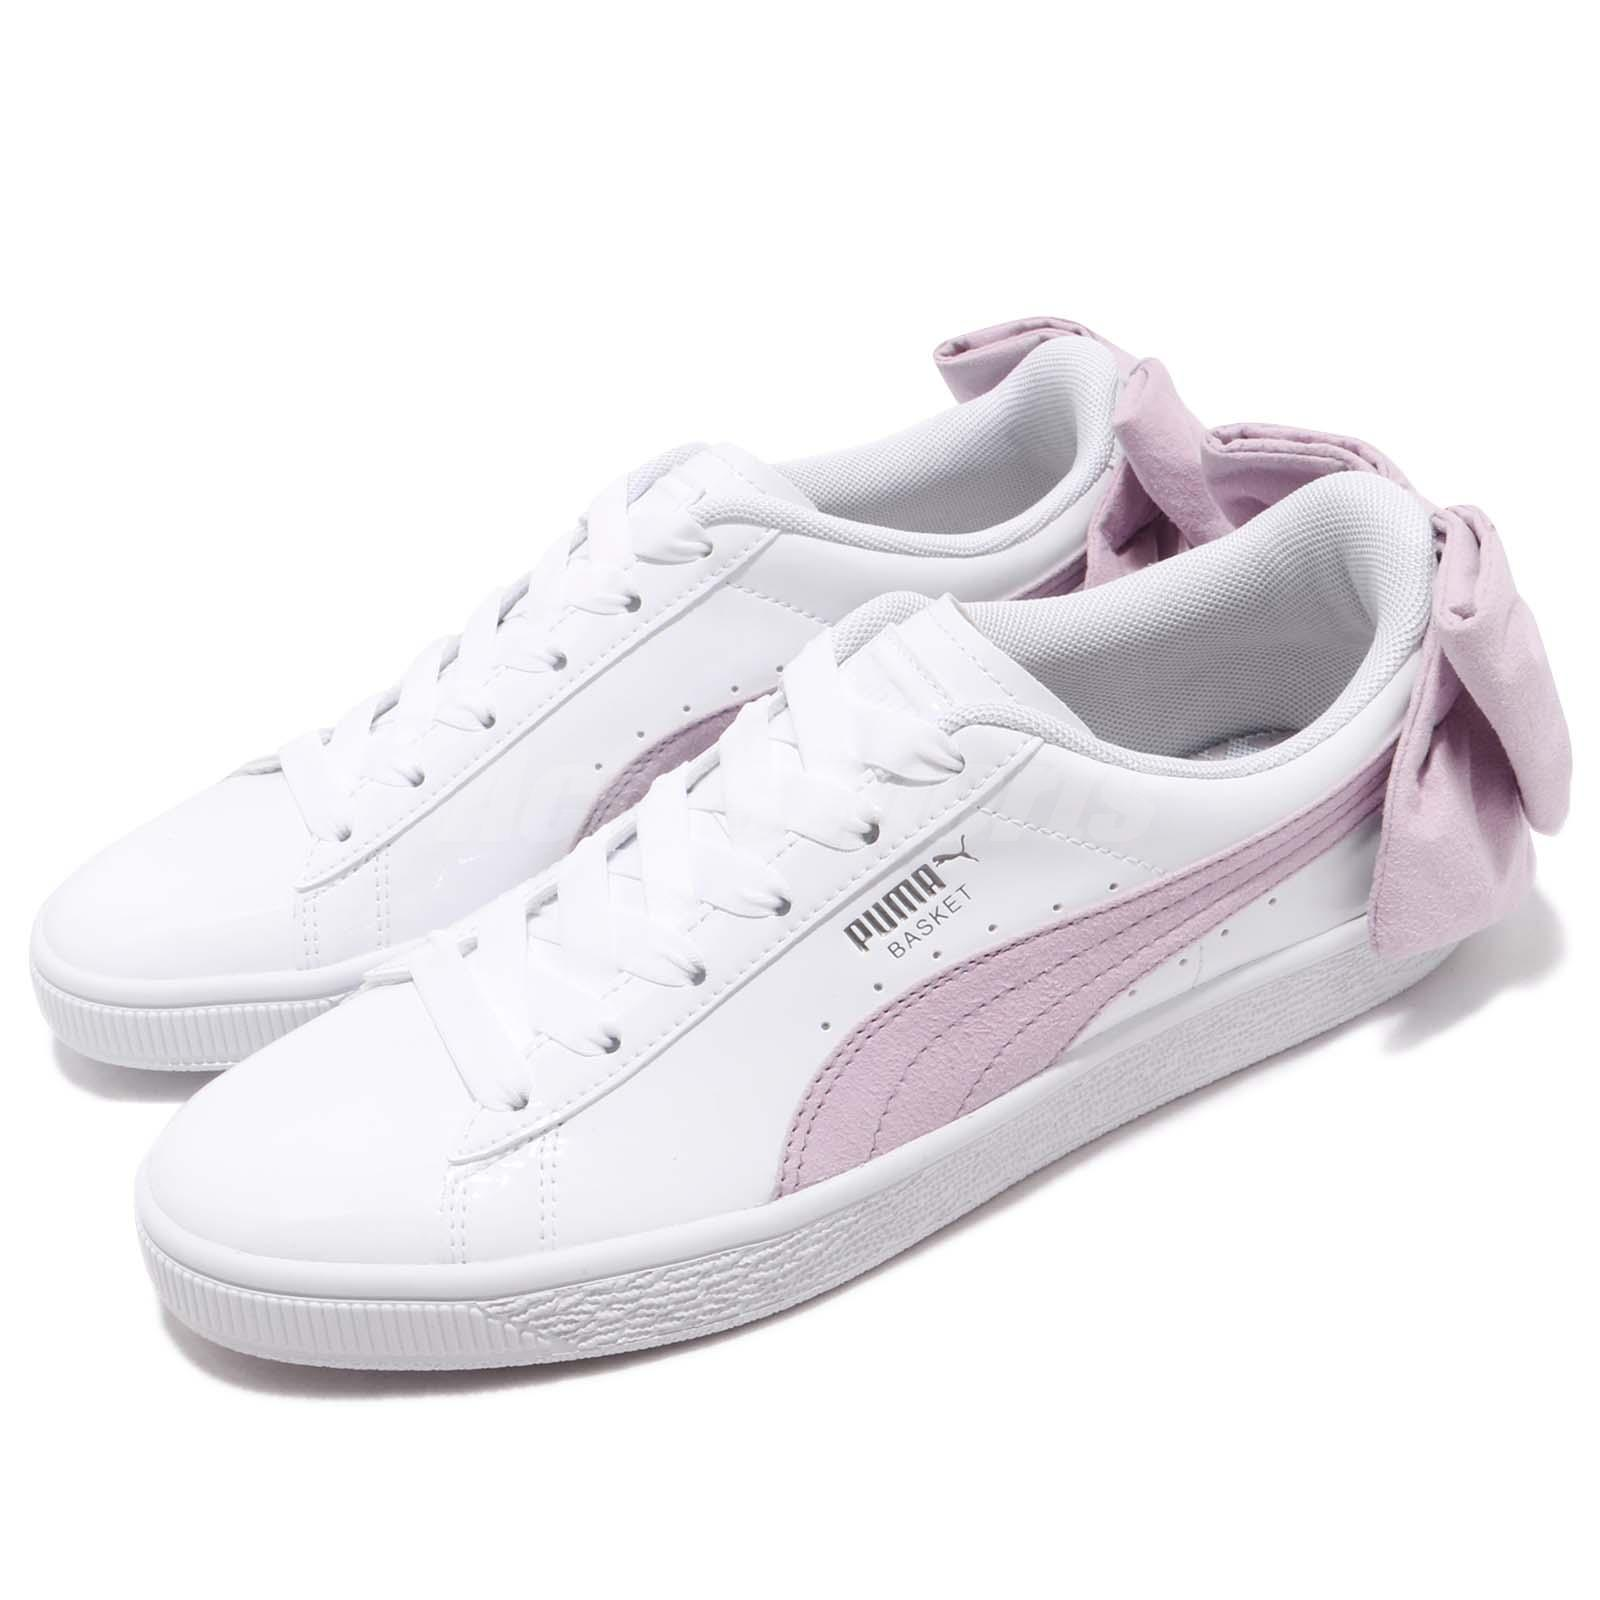 brand quality variety design genuine shoes Details about Puma Basket Bow SB Wns White Winsome Orchid Women Casual  Shoes Sneaker 367353-02